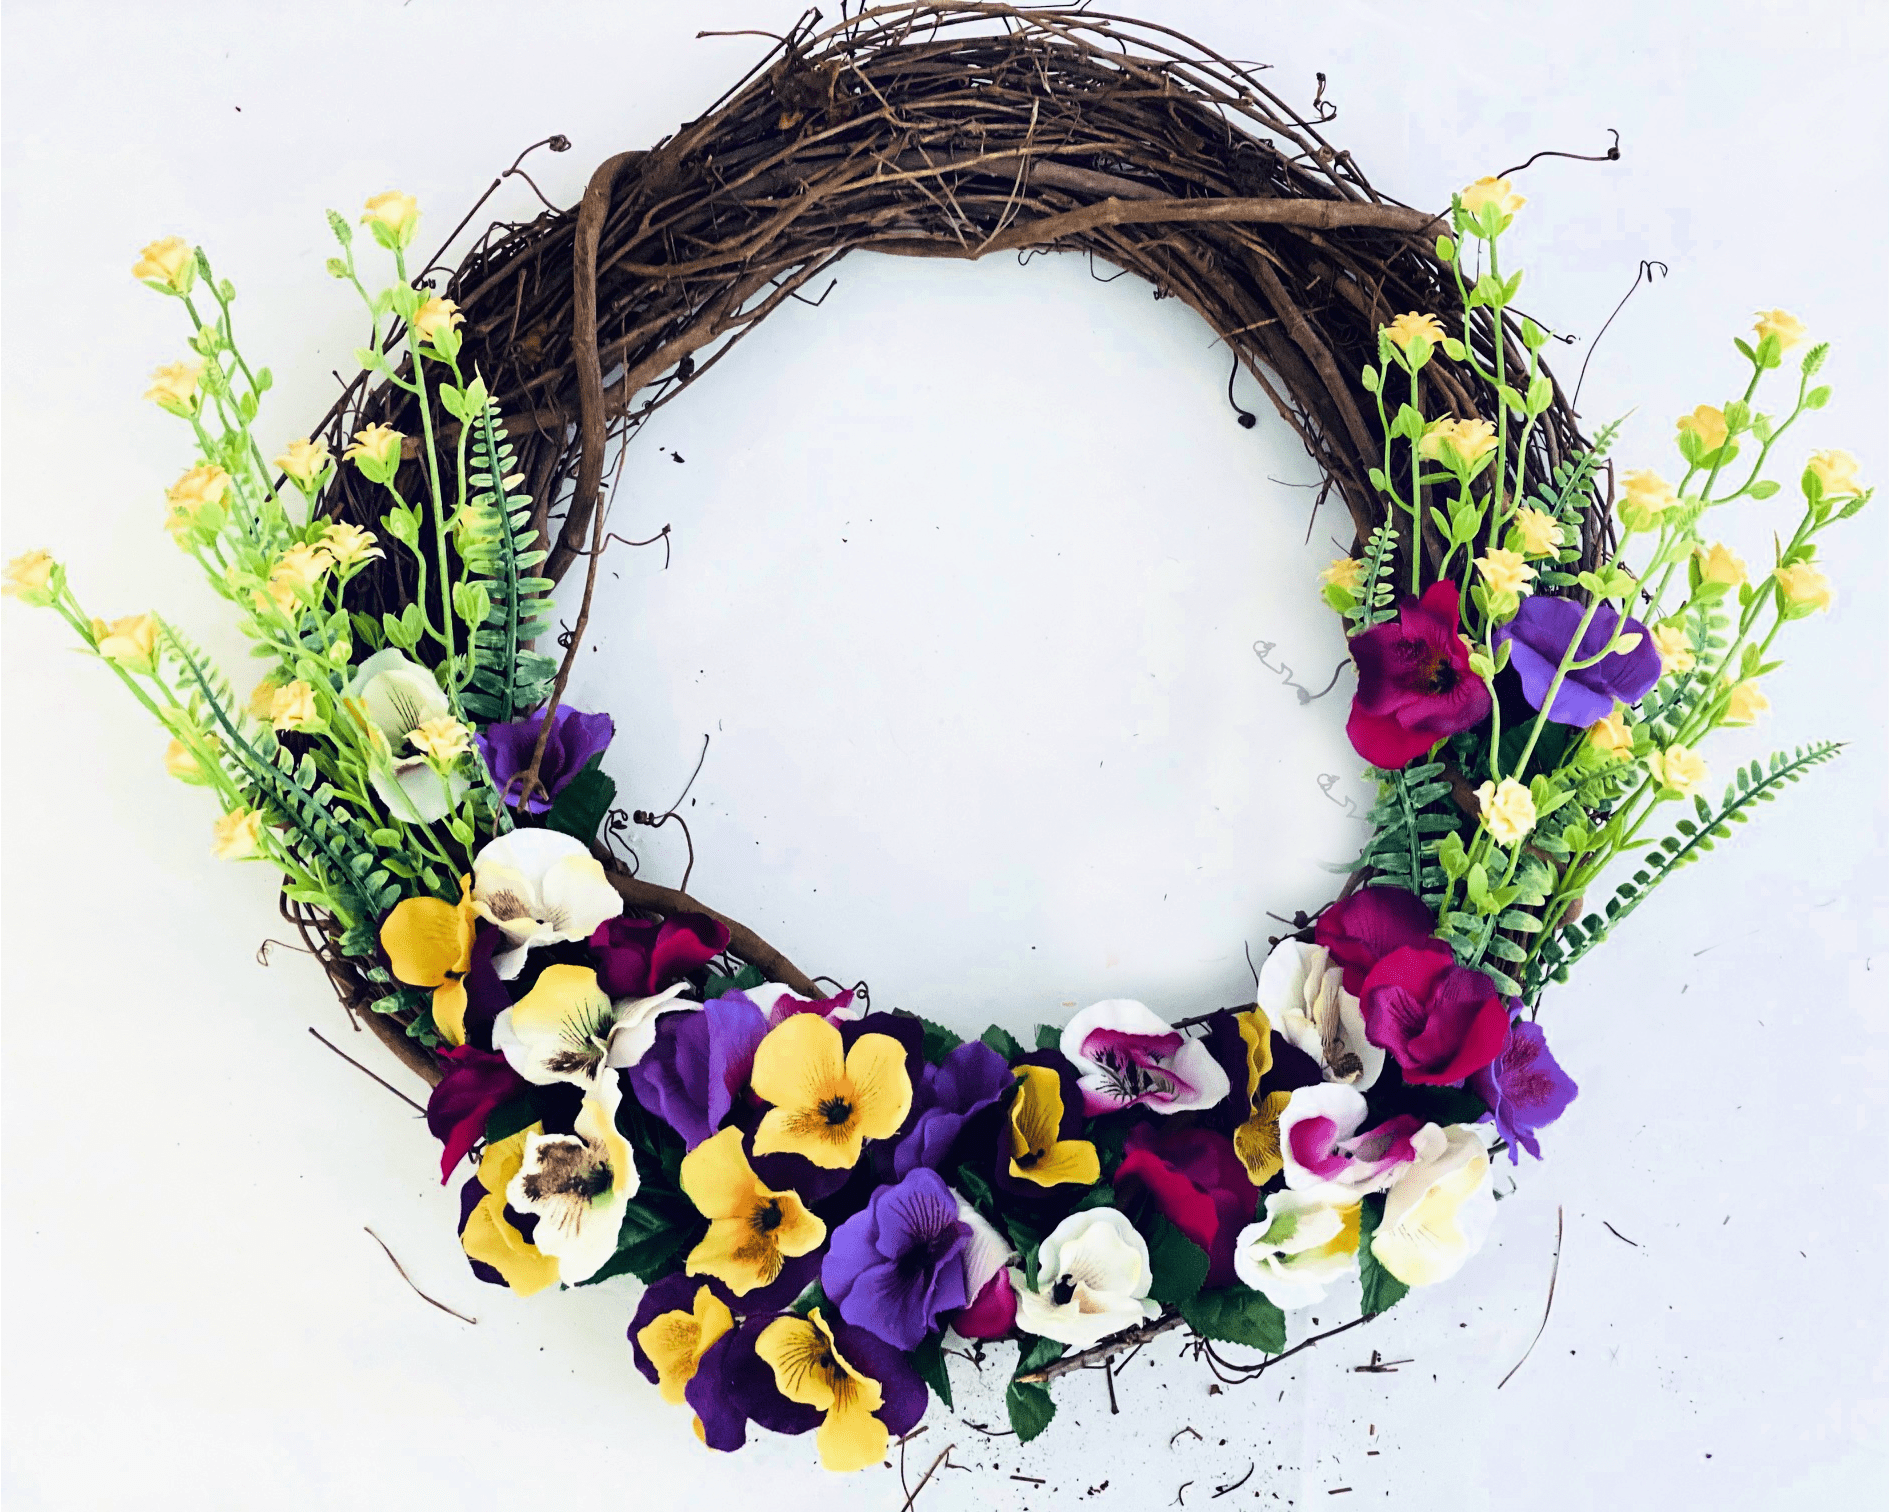 After adding artificial flowers (pansies in a variety of colors and yellow flowers with ferns) to the spring wreath. Next, add... DIY spring grapevine wreath at DearCreatives.com